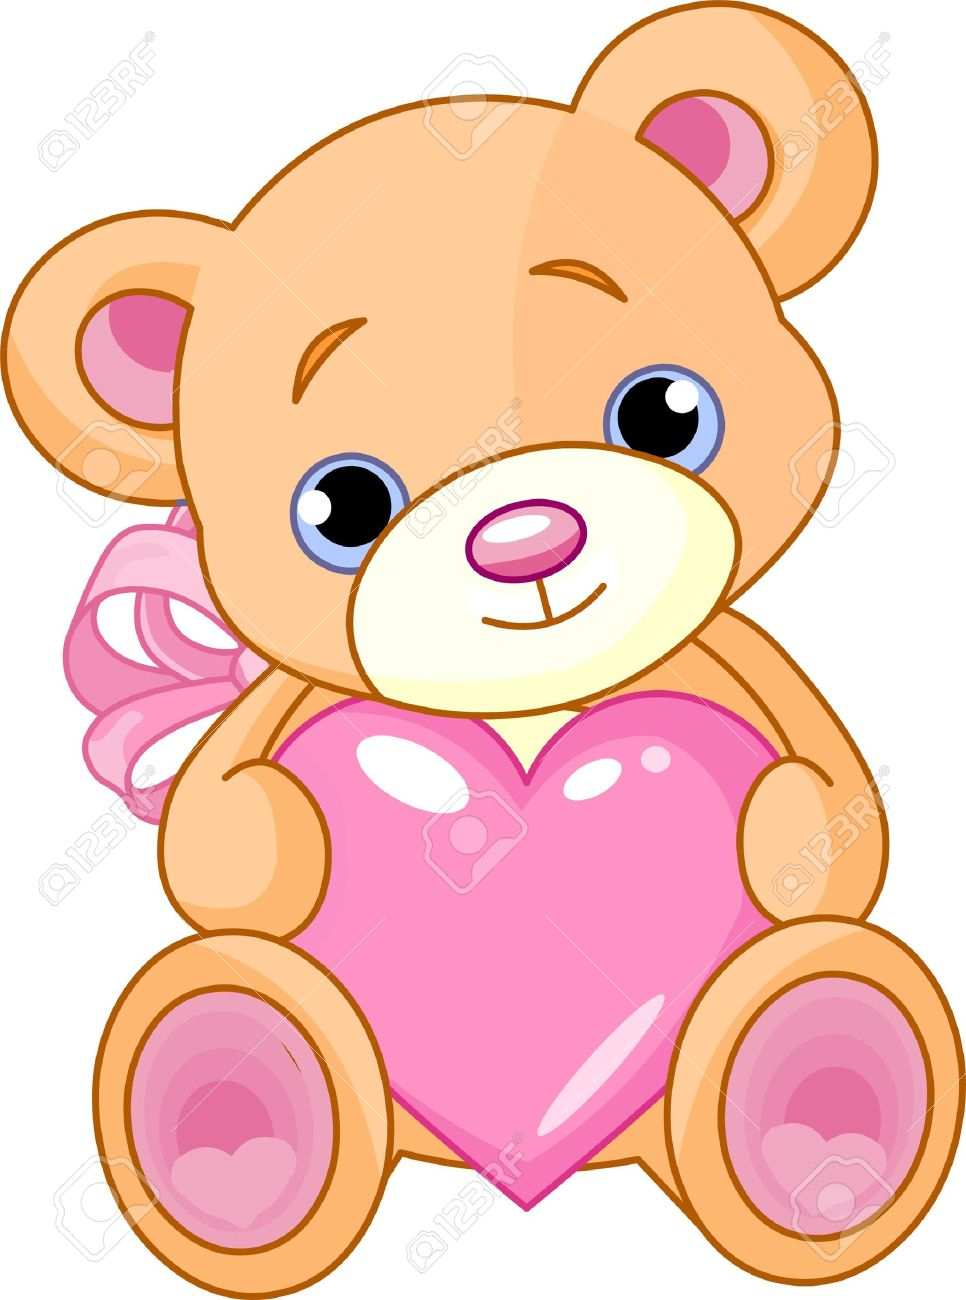 Teddy bear drawing images at getdrawings free for personal use 966x1300 bear with heart drawing photos cute teddy bear heart drawing altavistaventures Image collections